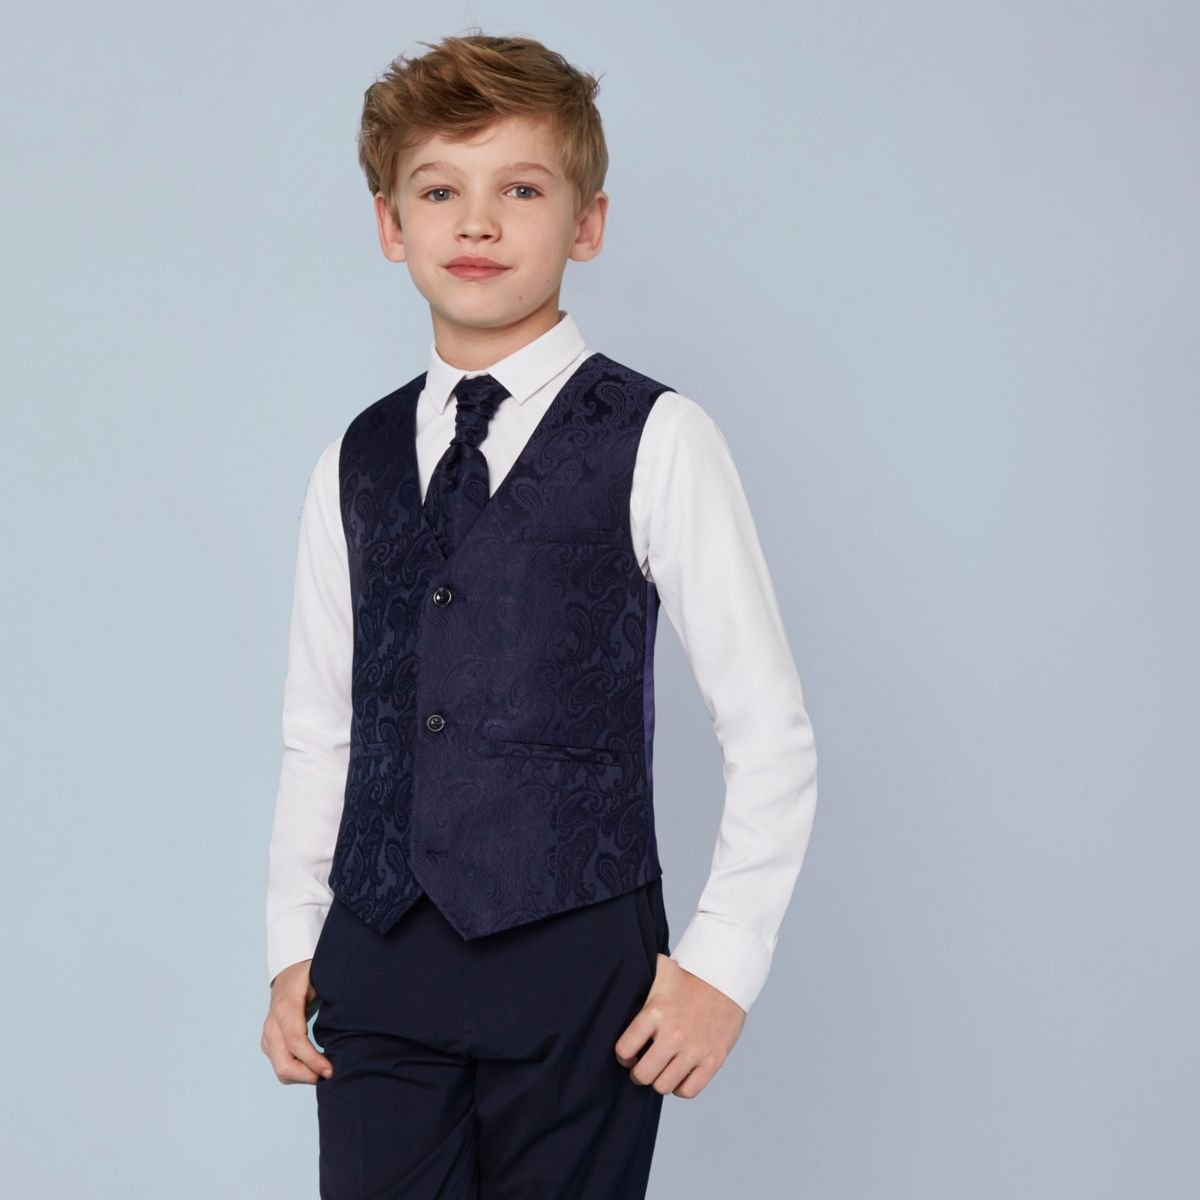 This boys suit set consists of a full sleeve shirt, double breasted waistcoat, tie and pant. Waistcoat, checkered pattern, welt pocket and brooch details in regular fit style and pant has half elastic on the back side which ensures it fits to the little and delicate waist of your manga-hub.tks: 6.